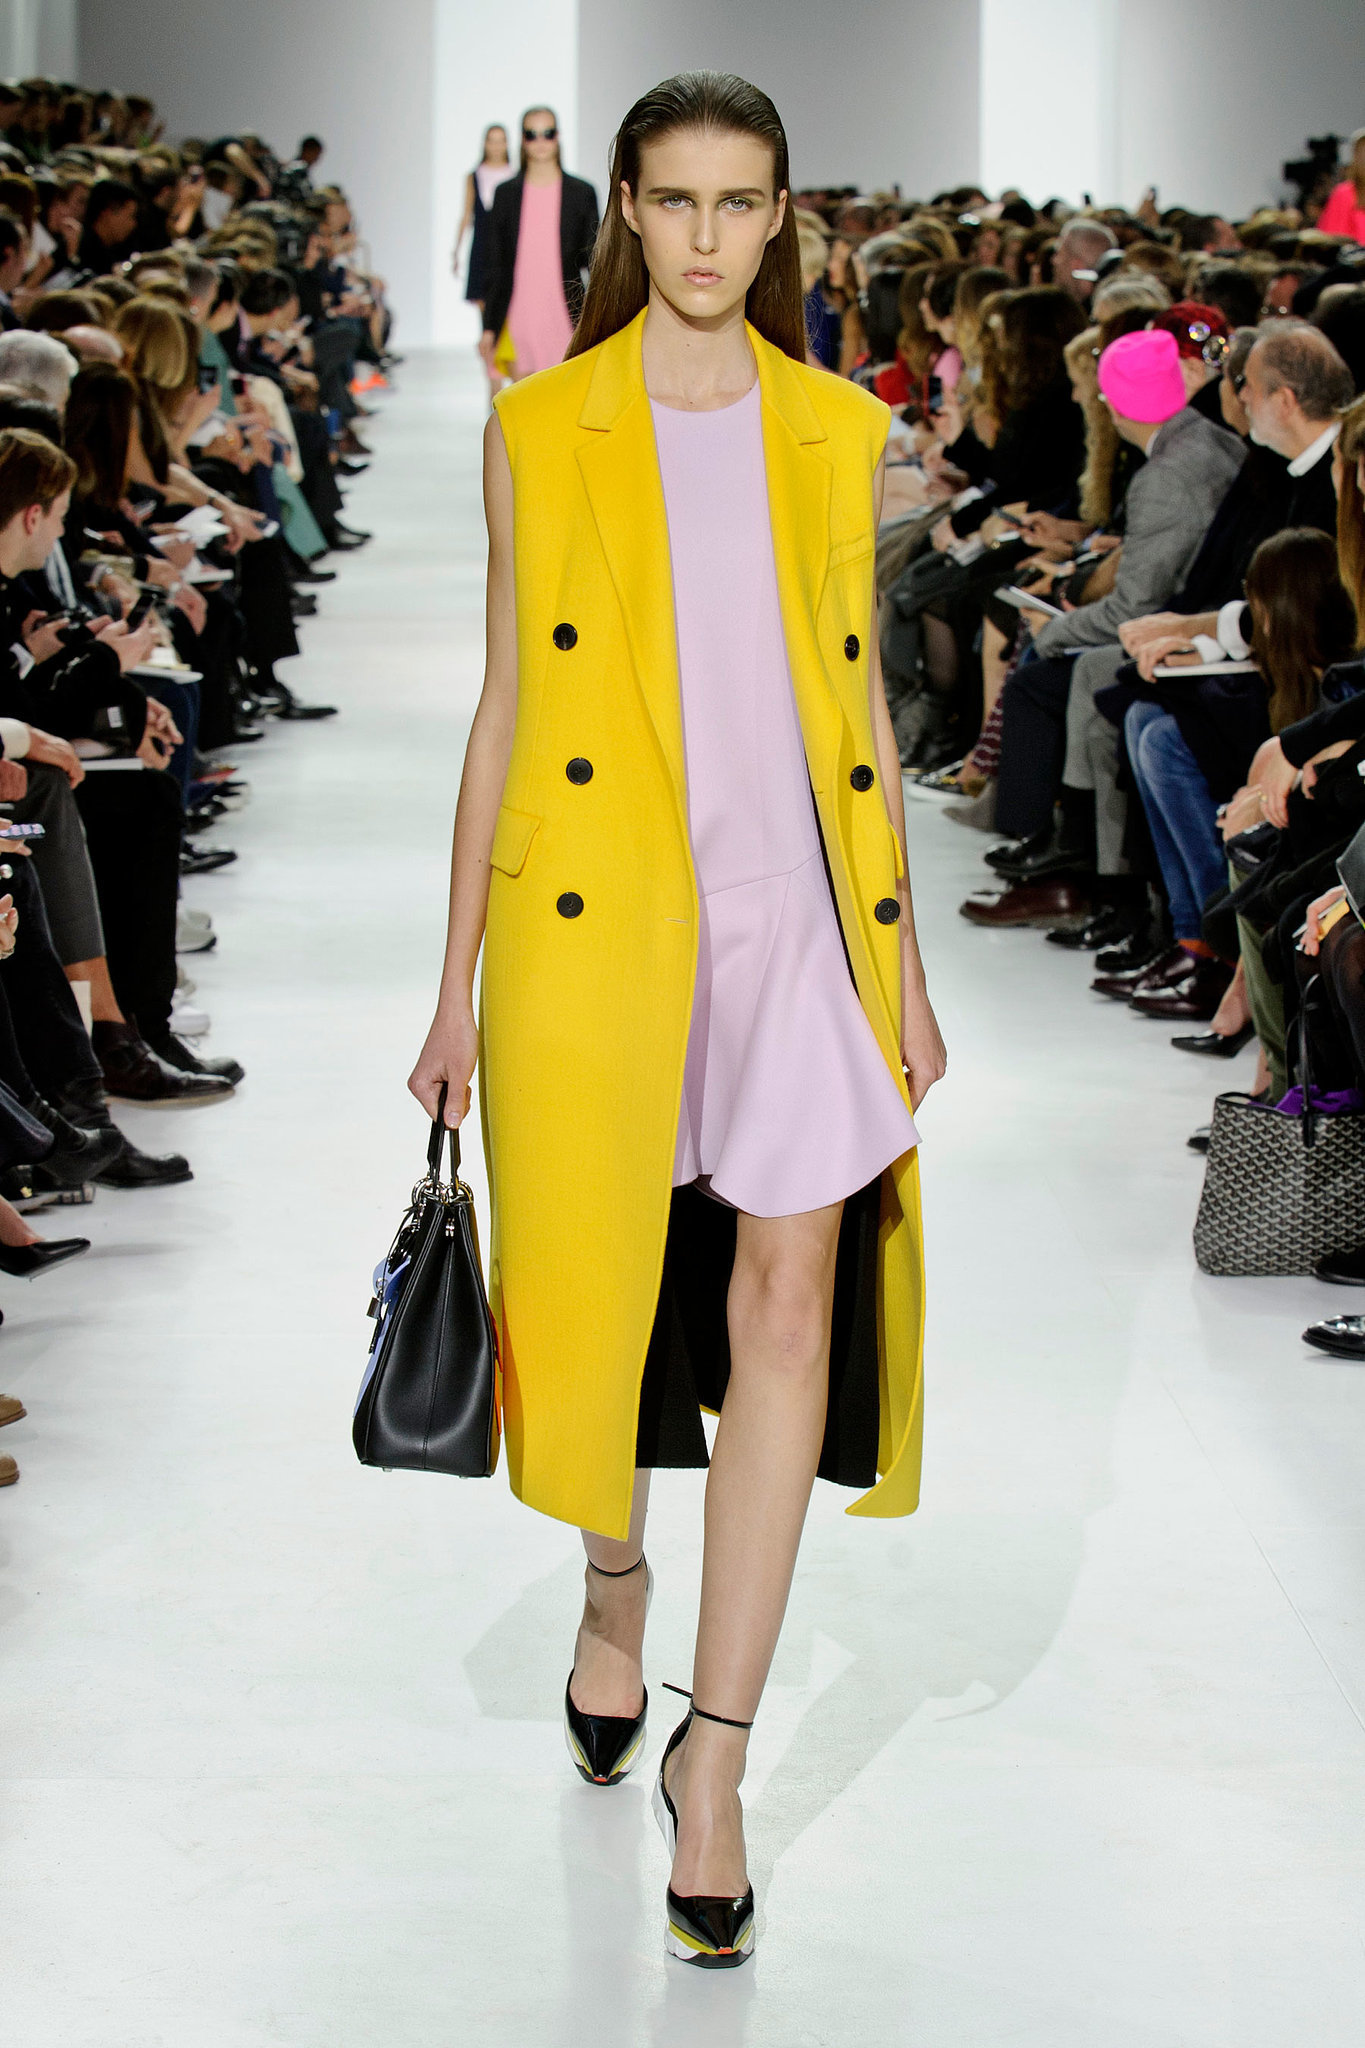 Christian Dior Fall 2014 LOOK OF THE DAY :   CHRISTIAN DIOR FALL/ WINTER 2014 COLLECTION